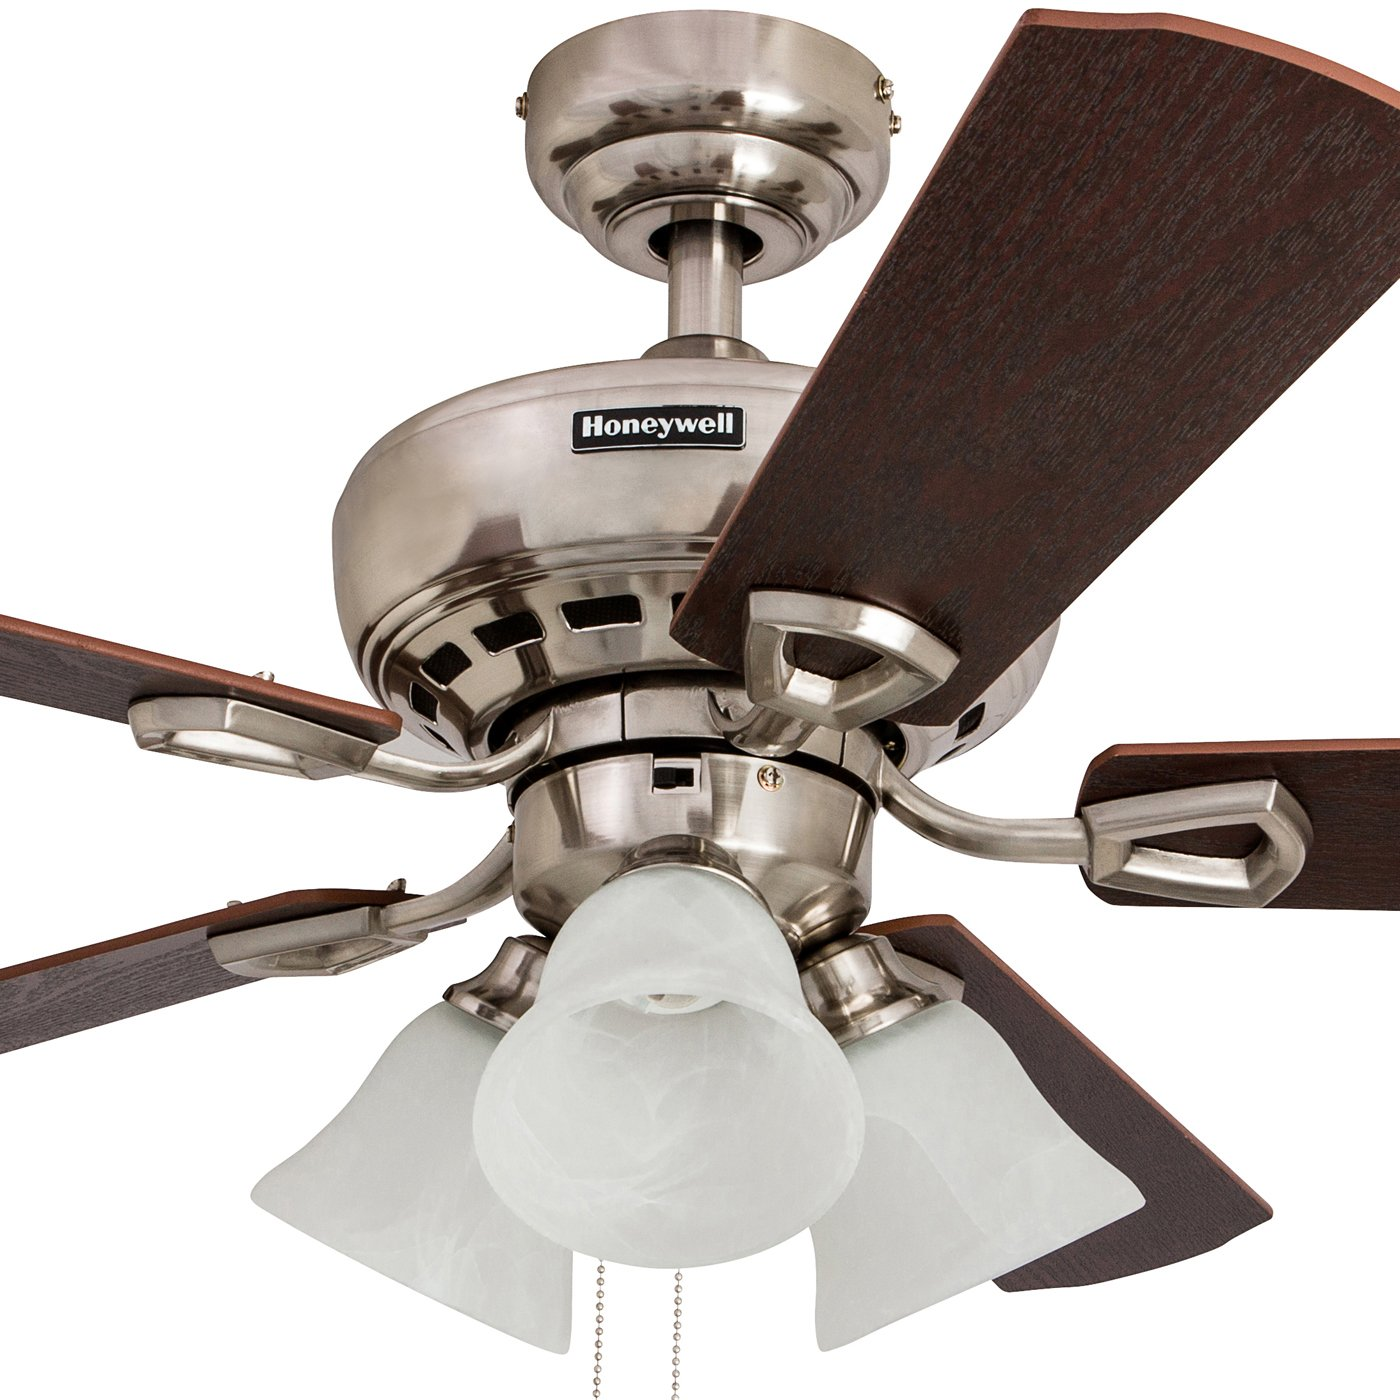 Honeywell Ceiling Fans Honeywell Springhill 50184 Sloped Ceiling Fan, Brushed Nickel